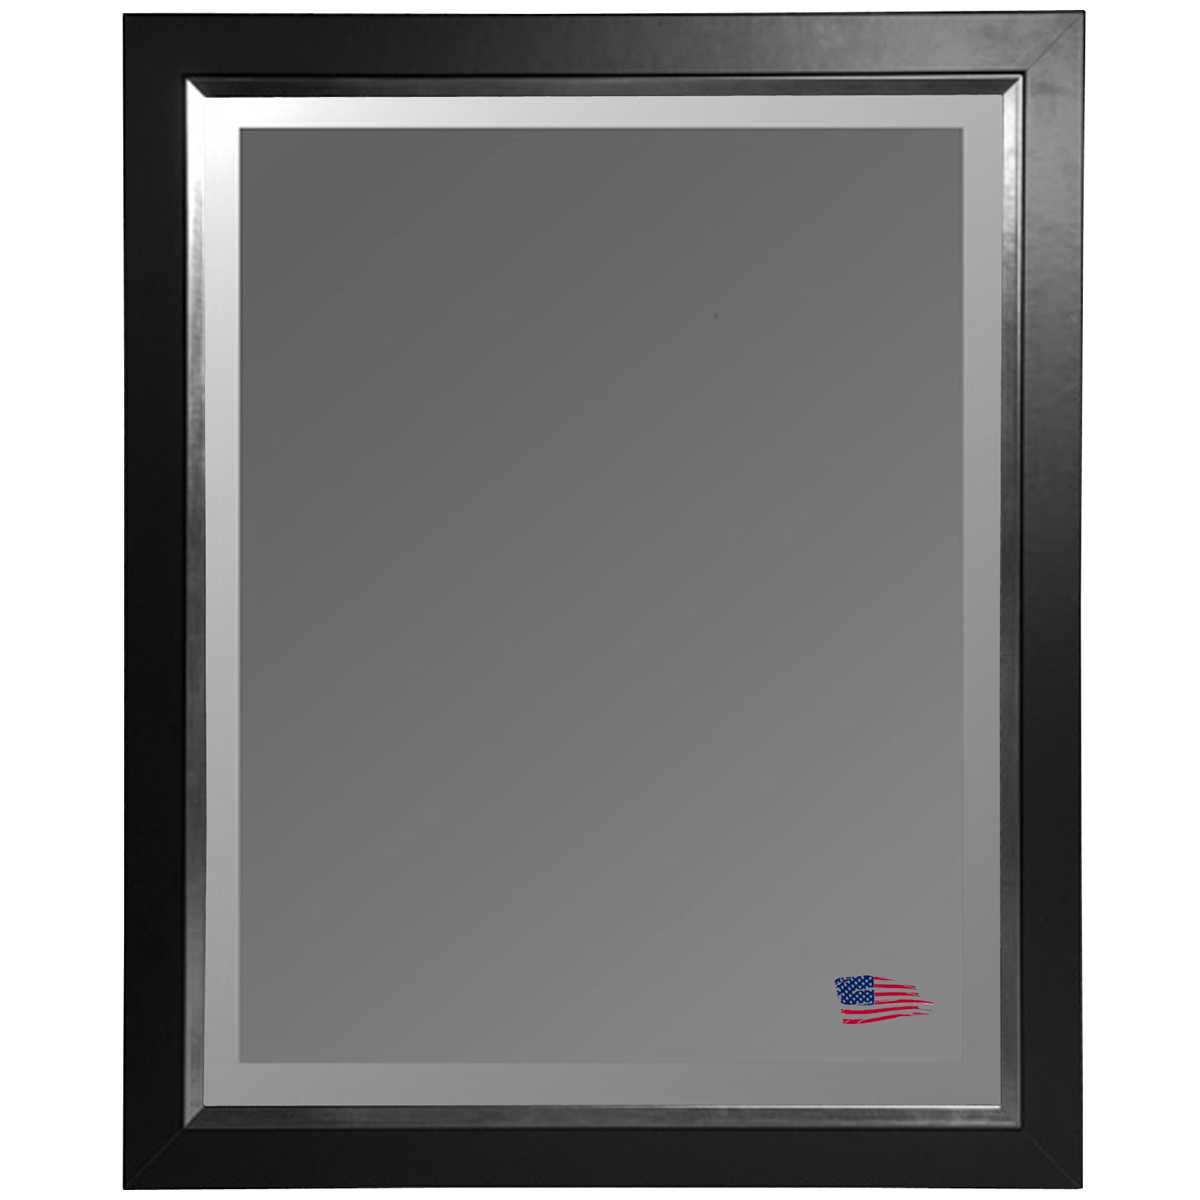 Hanging Mirror - Black Frame, Silver Liner, Beveled Glass - RAY-R010